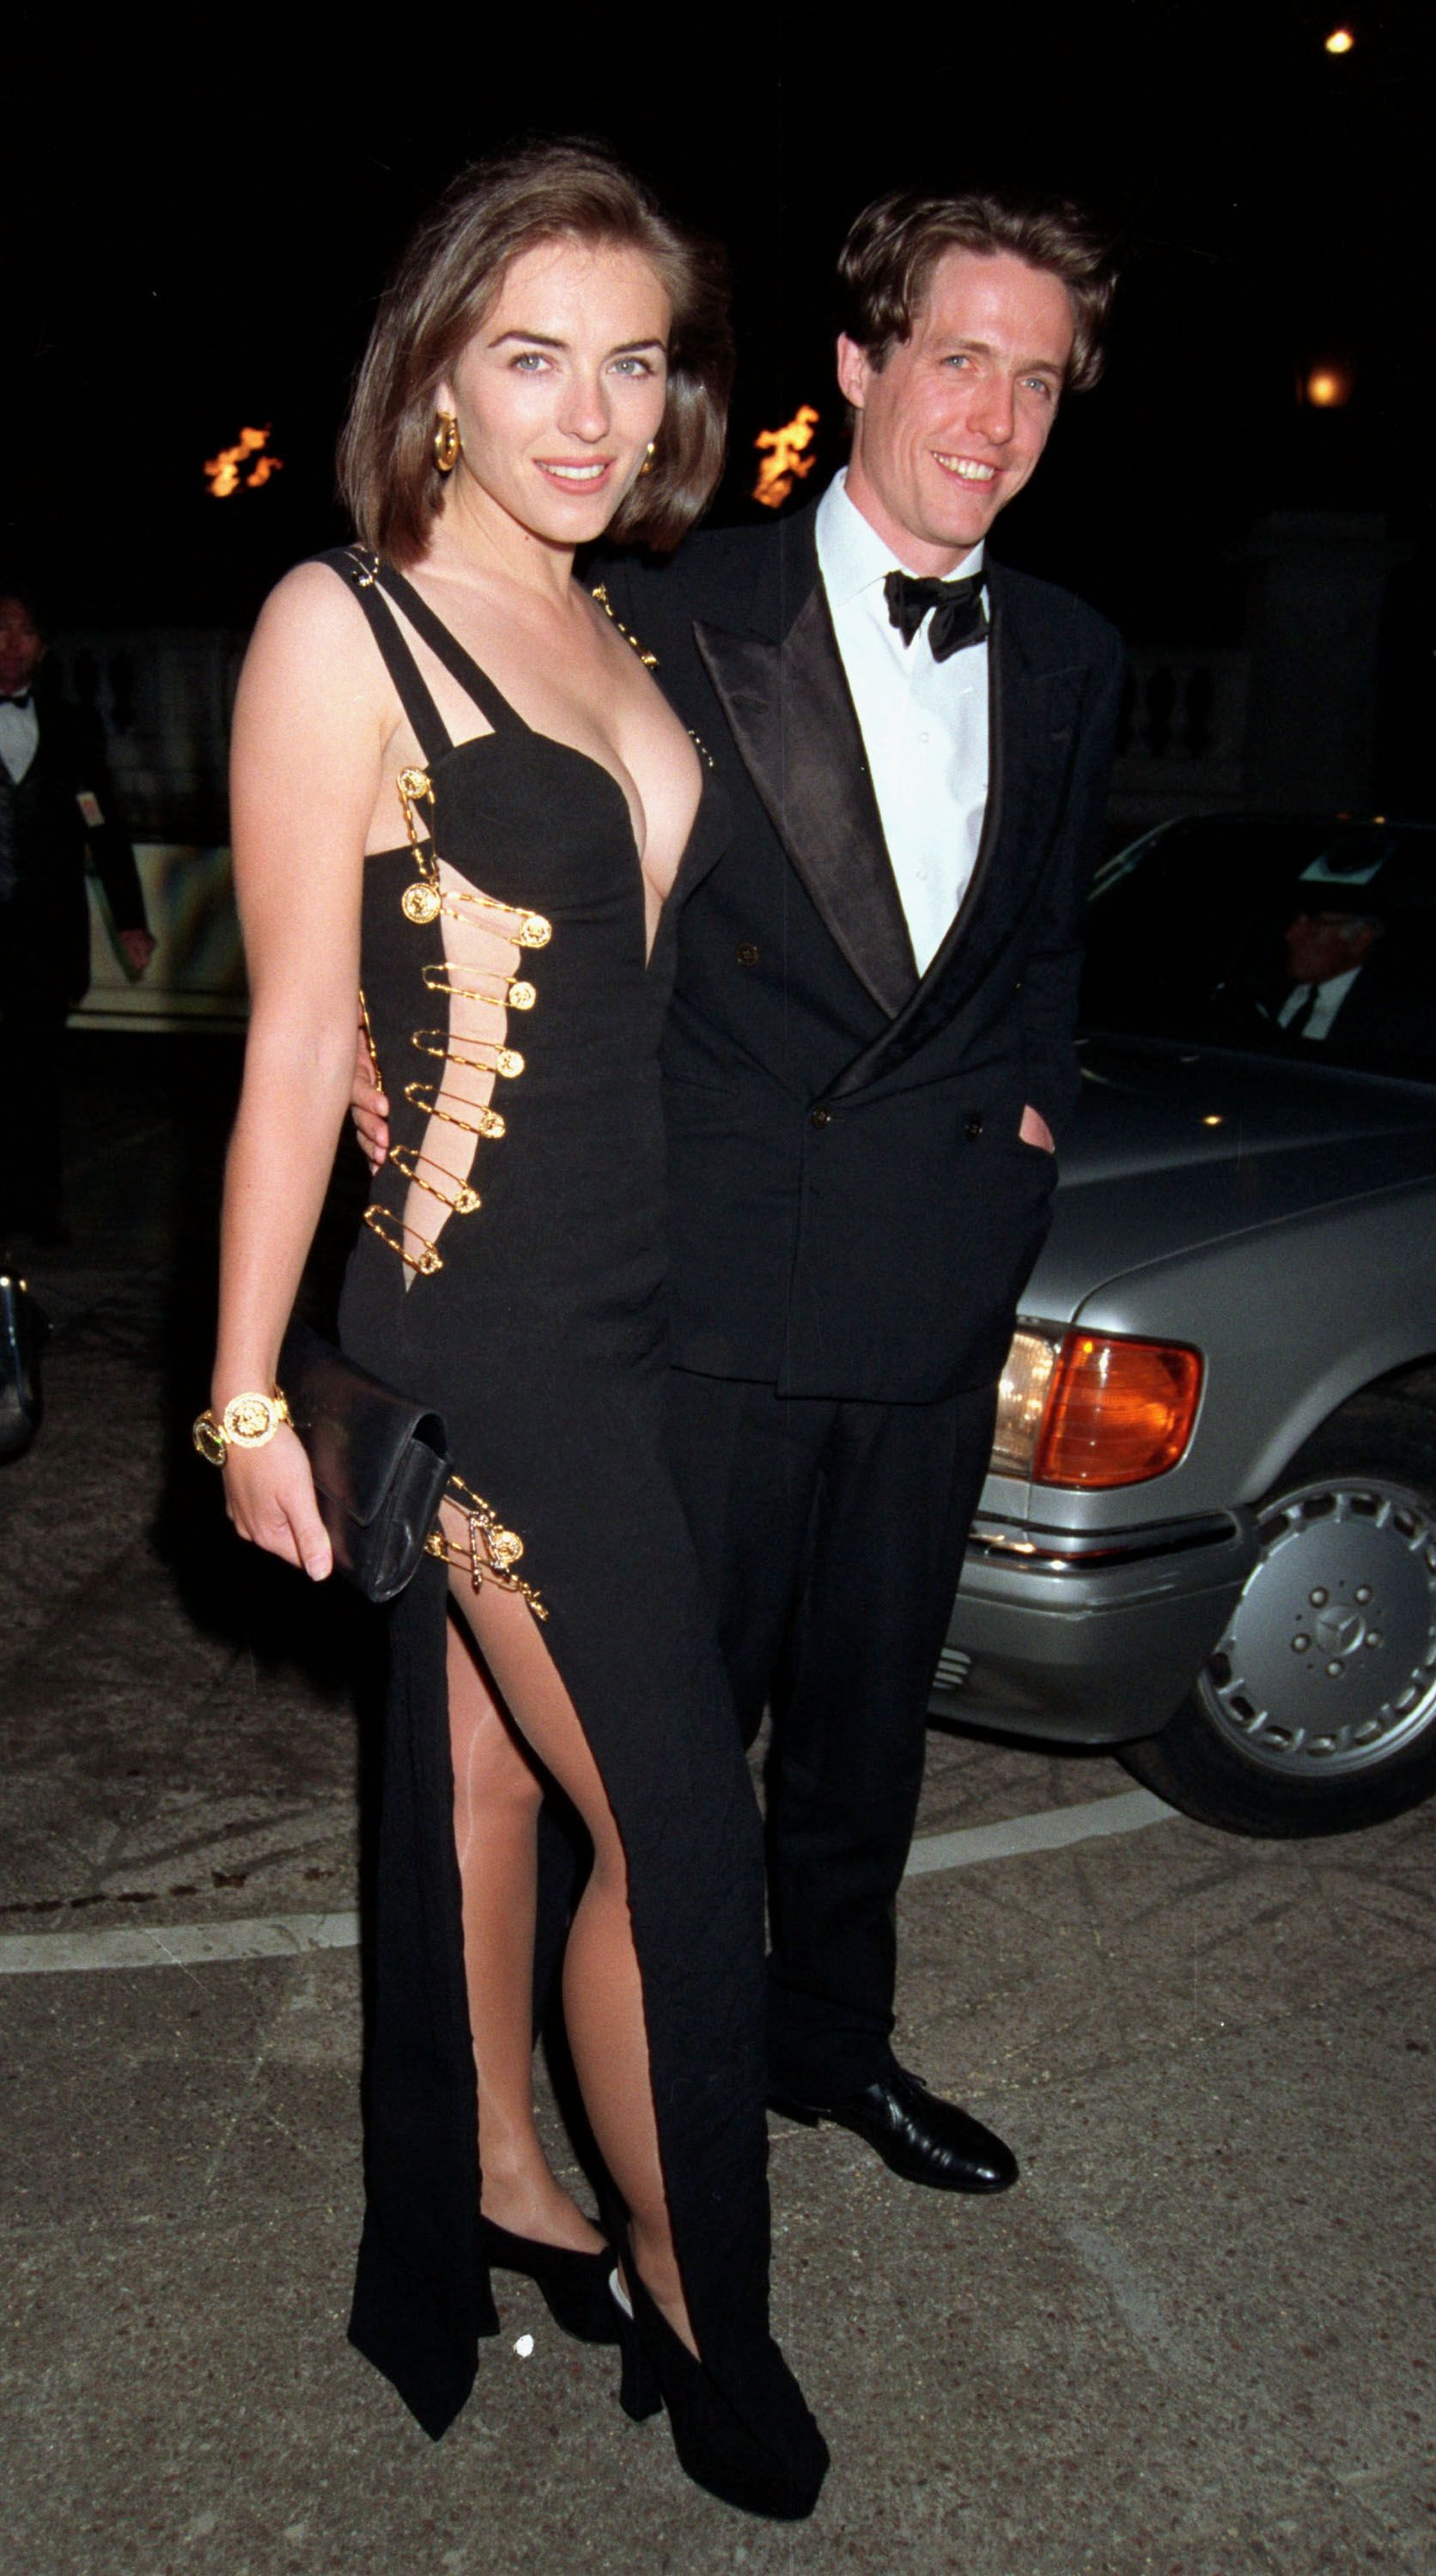 Elizabeth Hurley In The Iconic Versace Safety Pin Dress